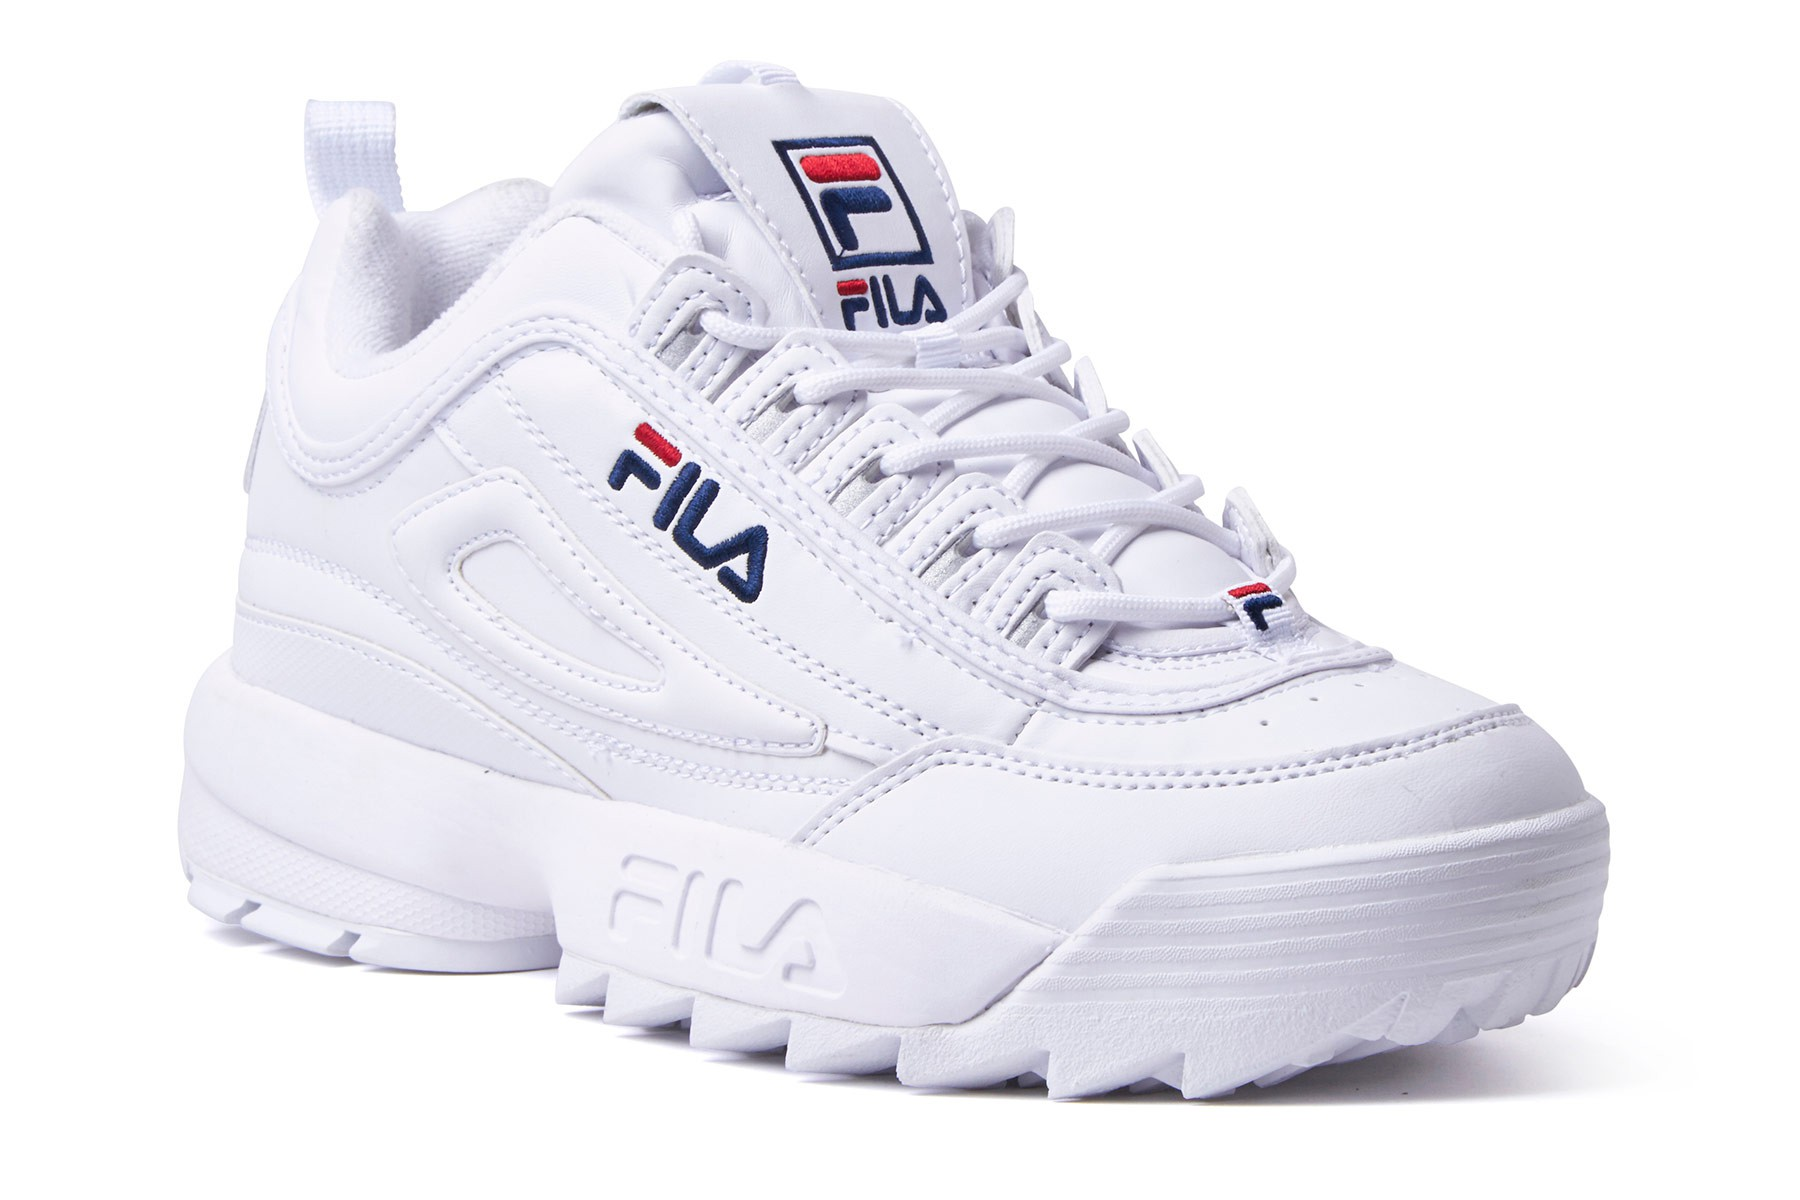 giay the thao ugly sneakers - fila disruptor - elle man